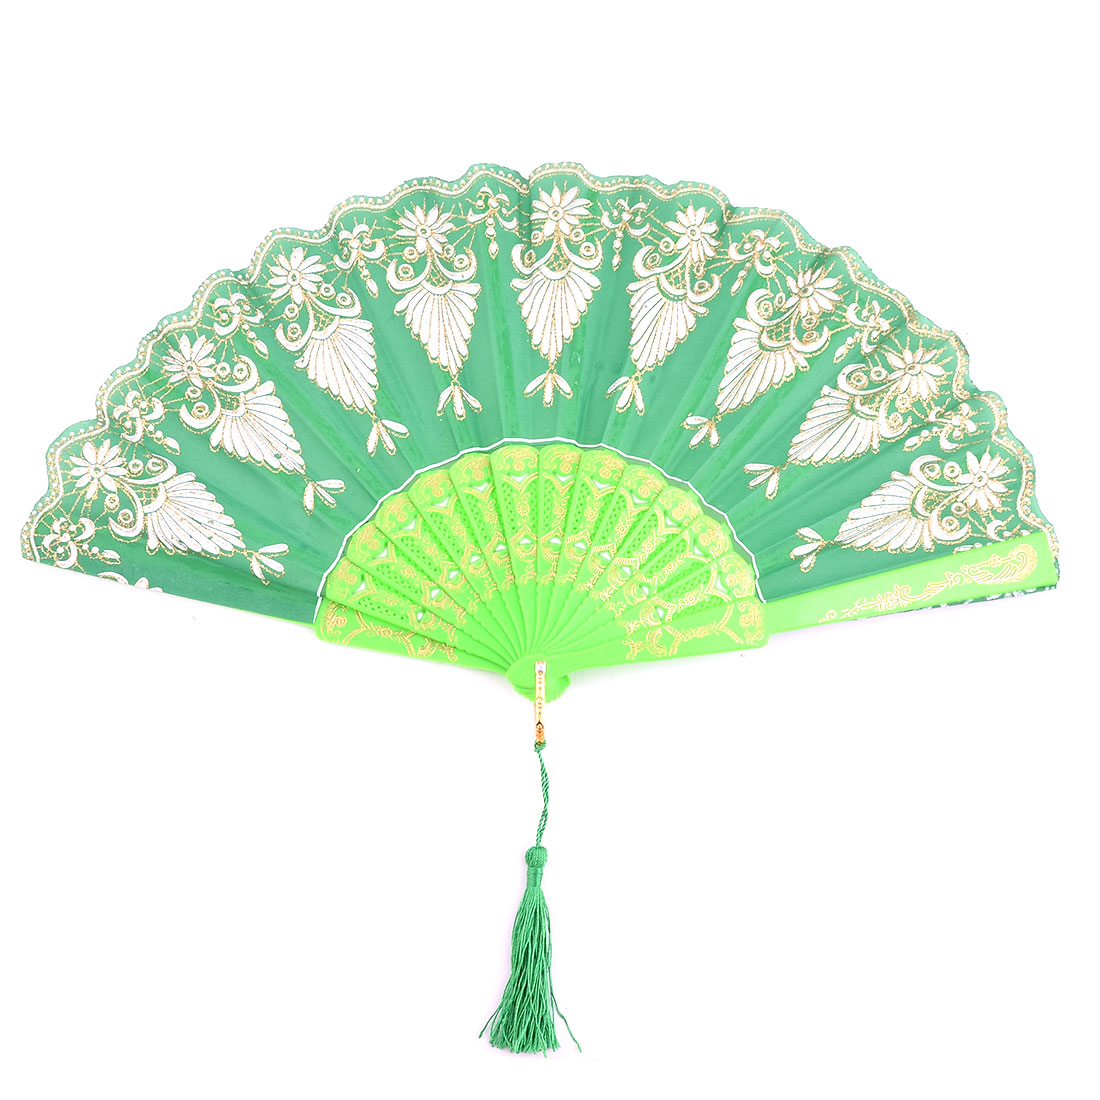 Home Plastic Peacock Tail Pattern Folding Dancing Cooling Hand Fan Green 24cm Length